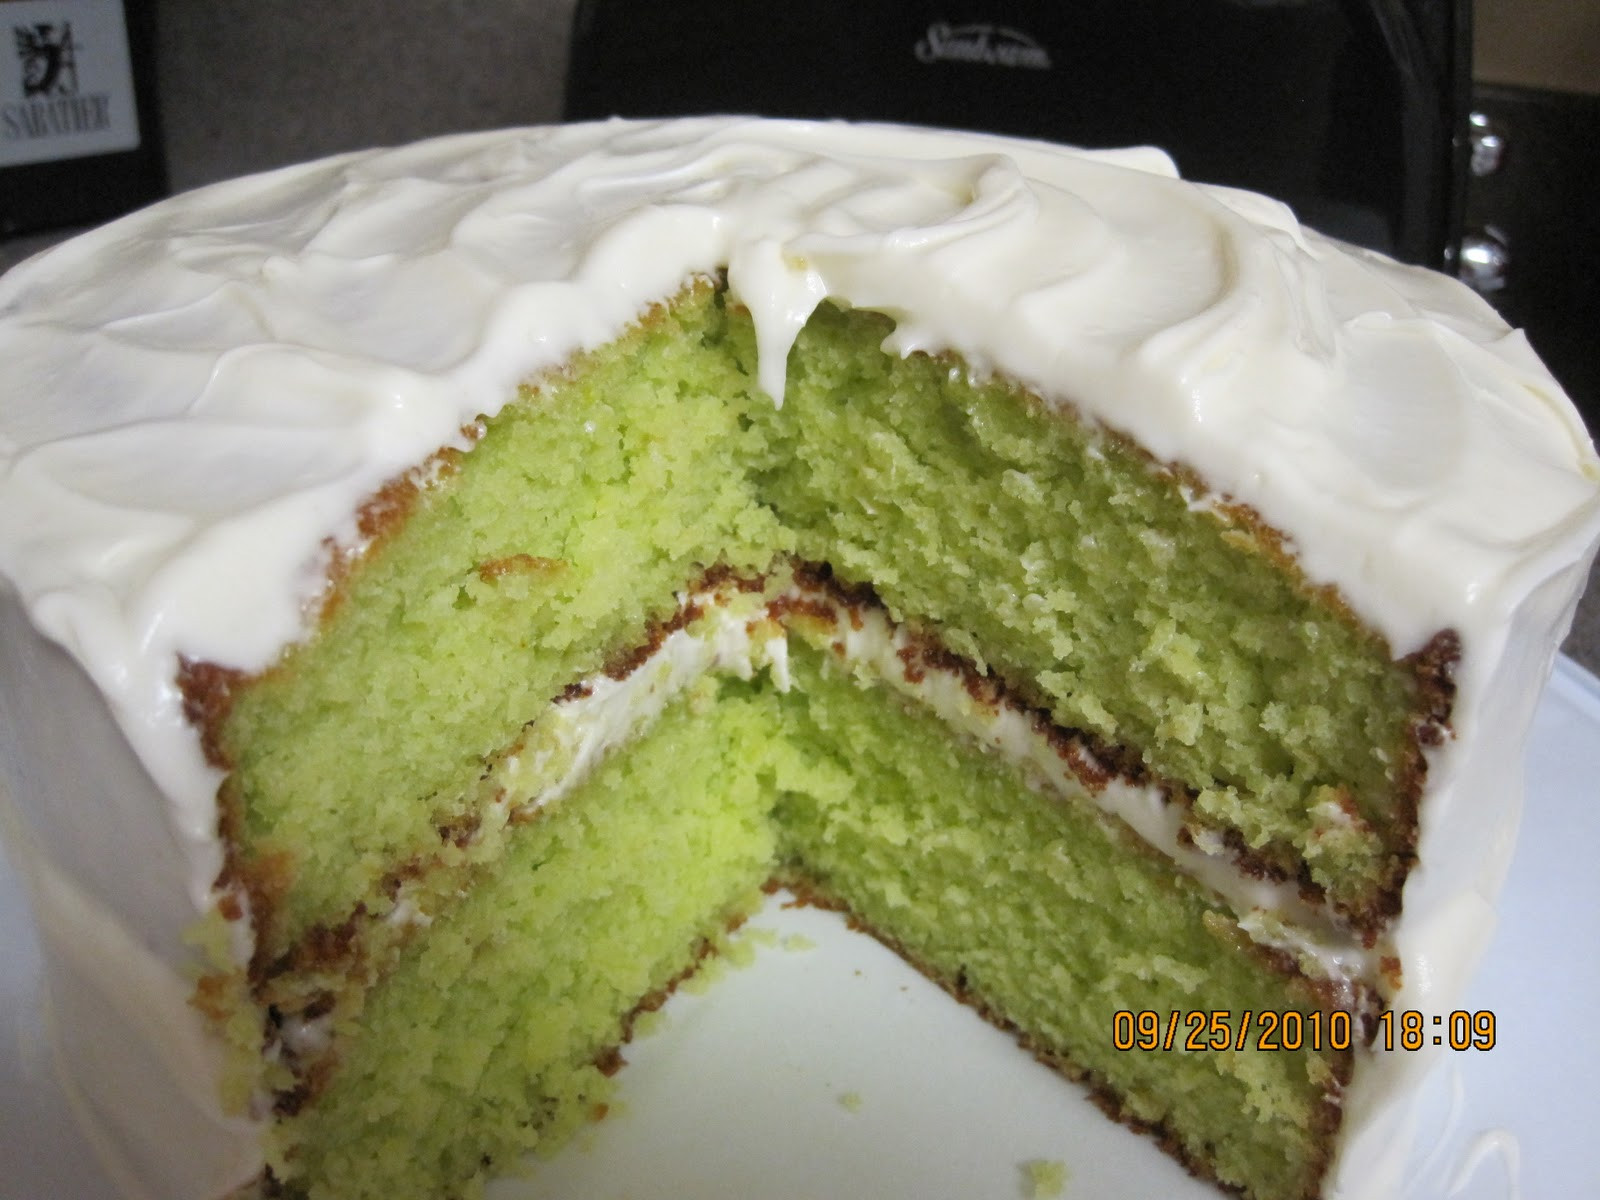 Key Lime Cake Recipe  The Passionate Cook September 2010